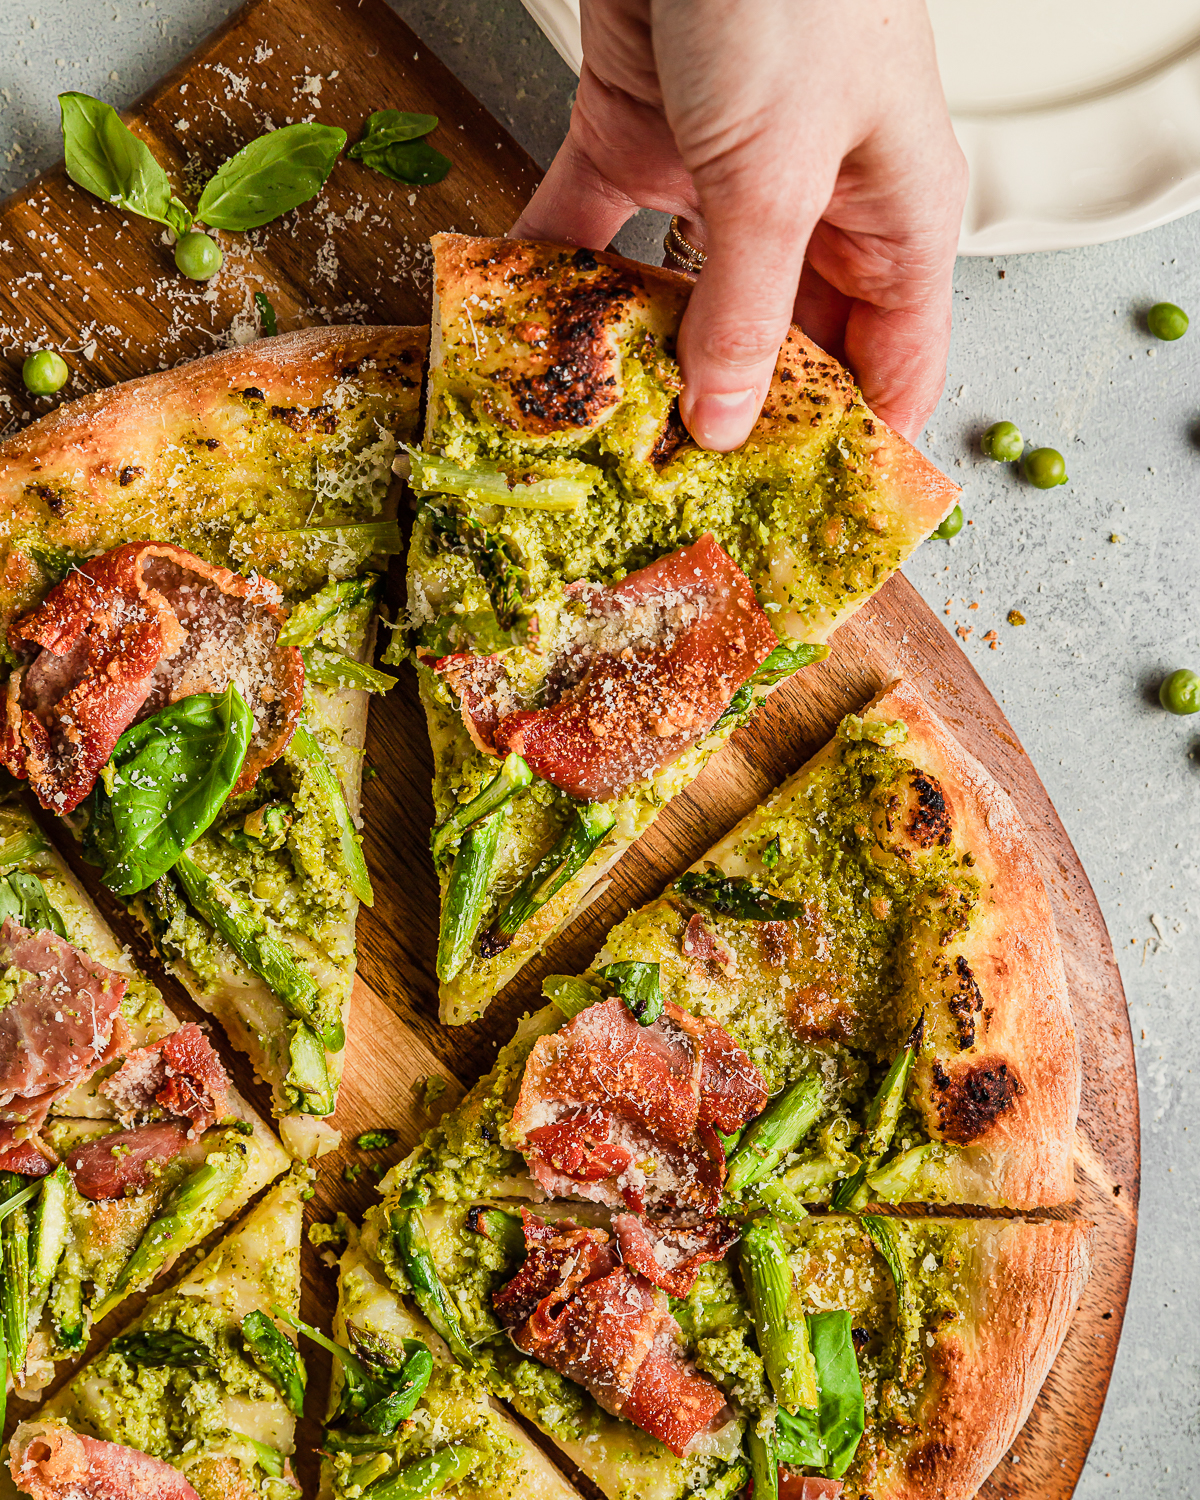 A slice of Asparagus Pizza with Prosciutto